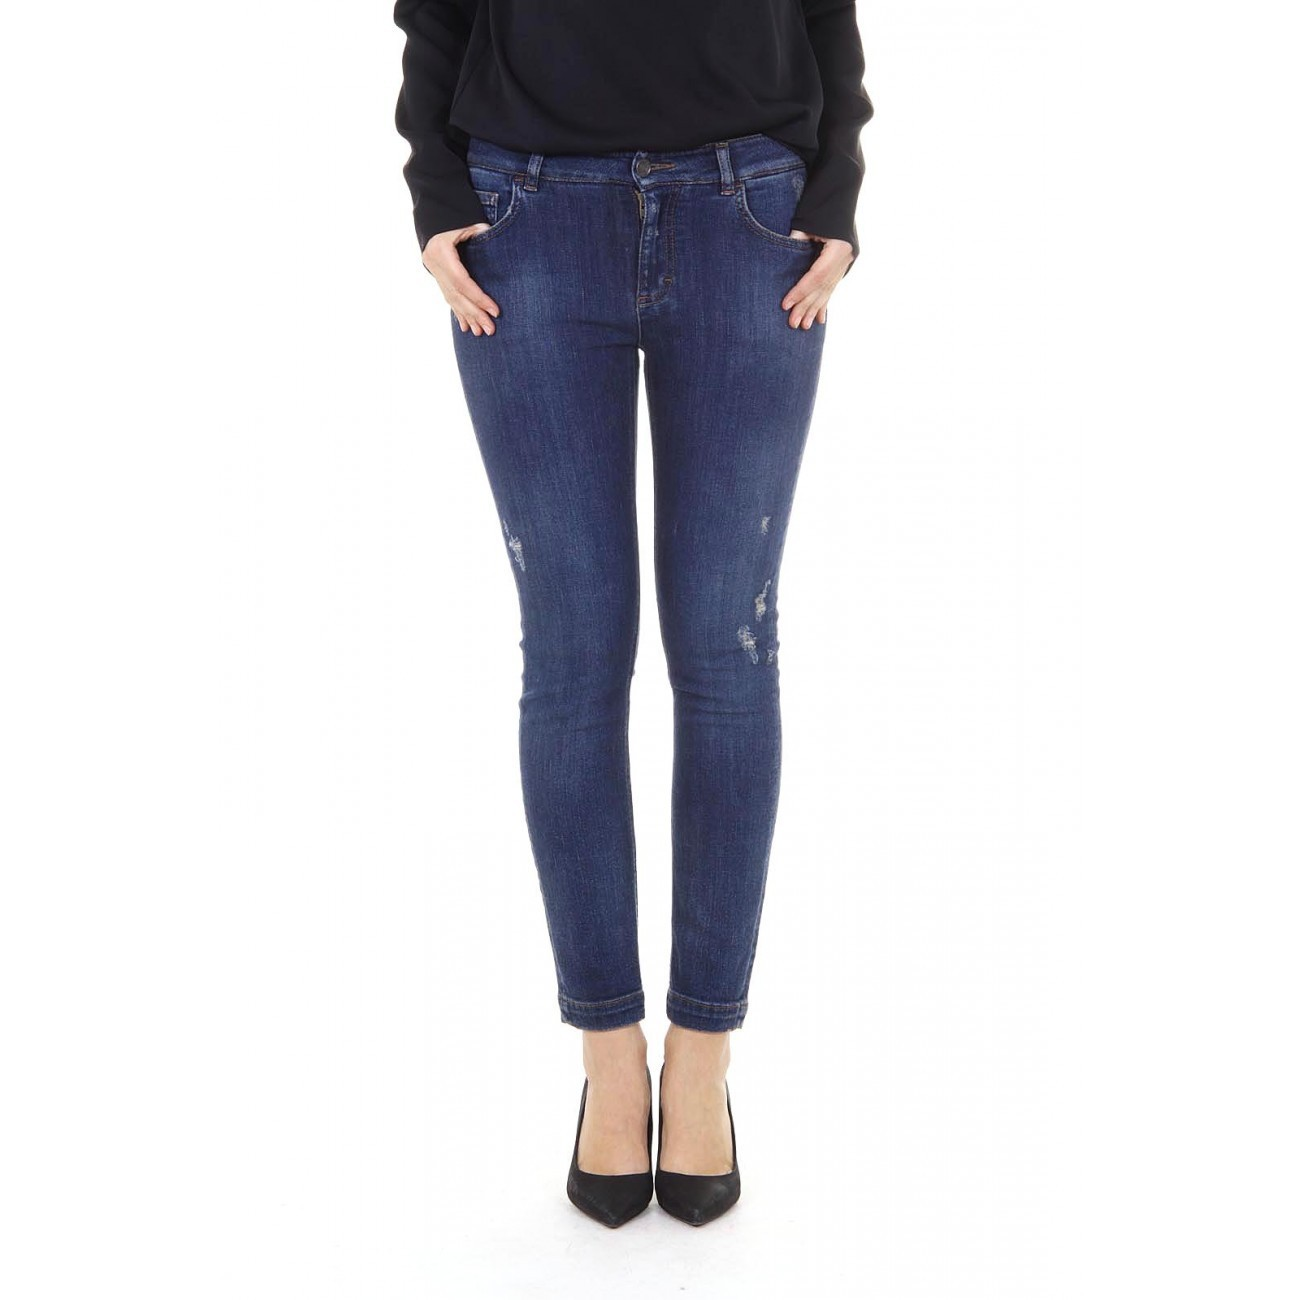 Primary image for Dolce & Gabbana ladies jeans FT43XD G874L B0065